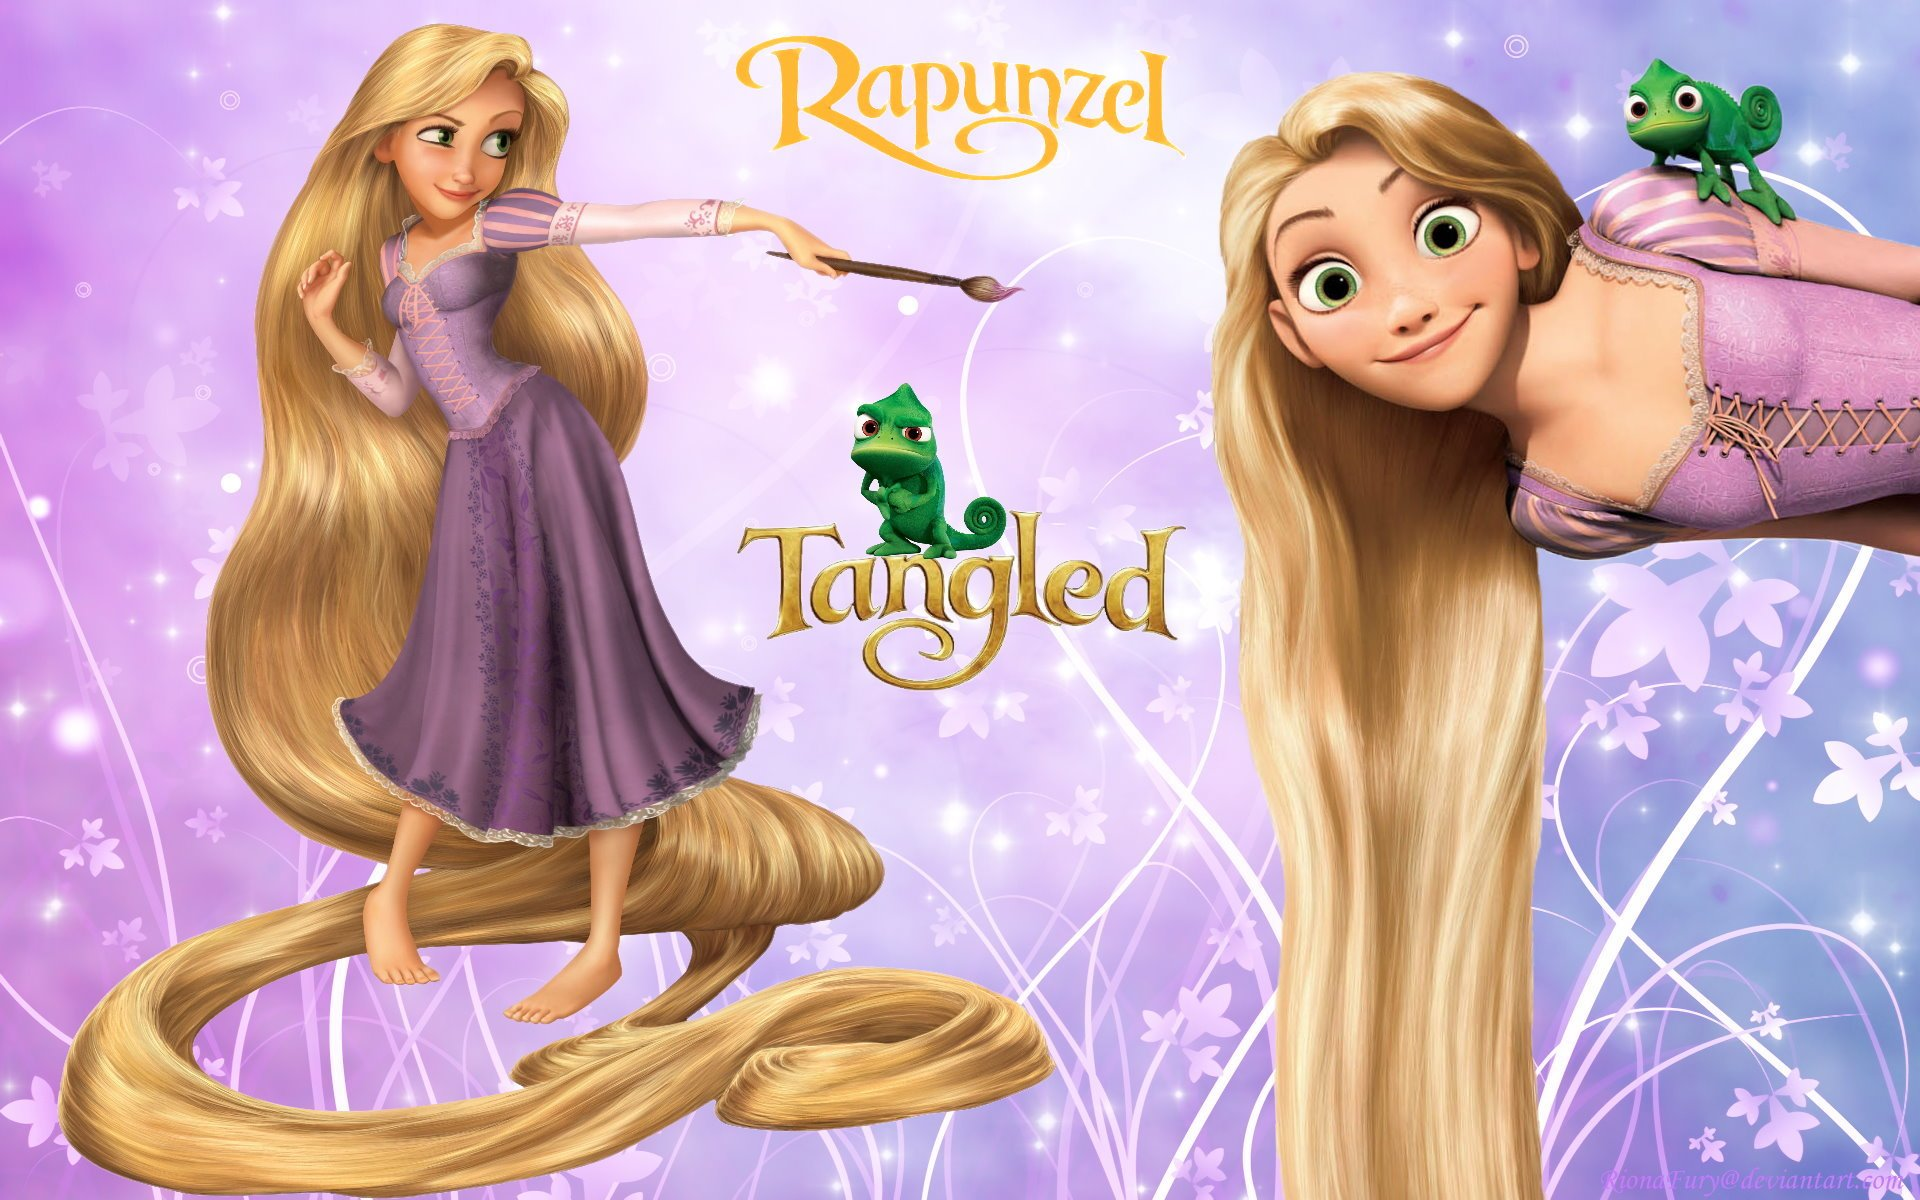 Disney-Princess-Rapunzel-tangled-23744590-1920-1200.jpg